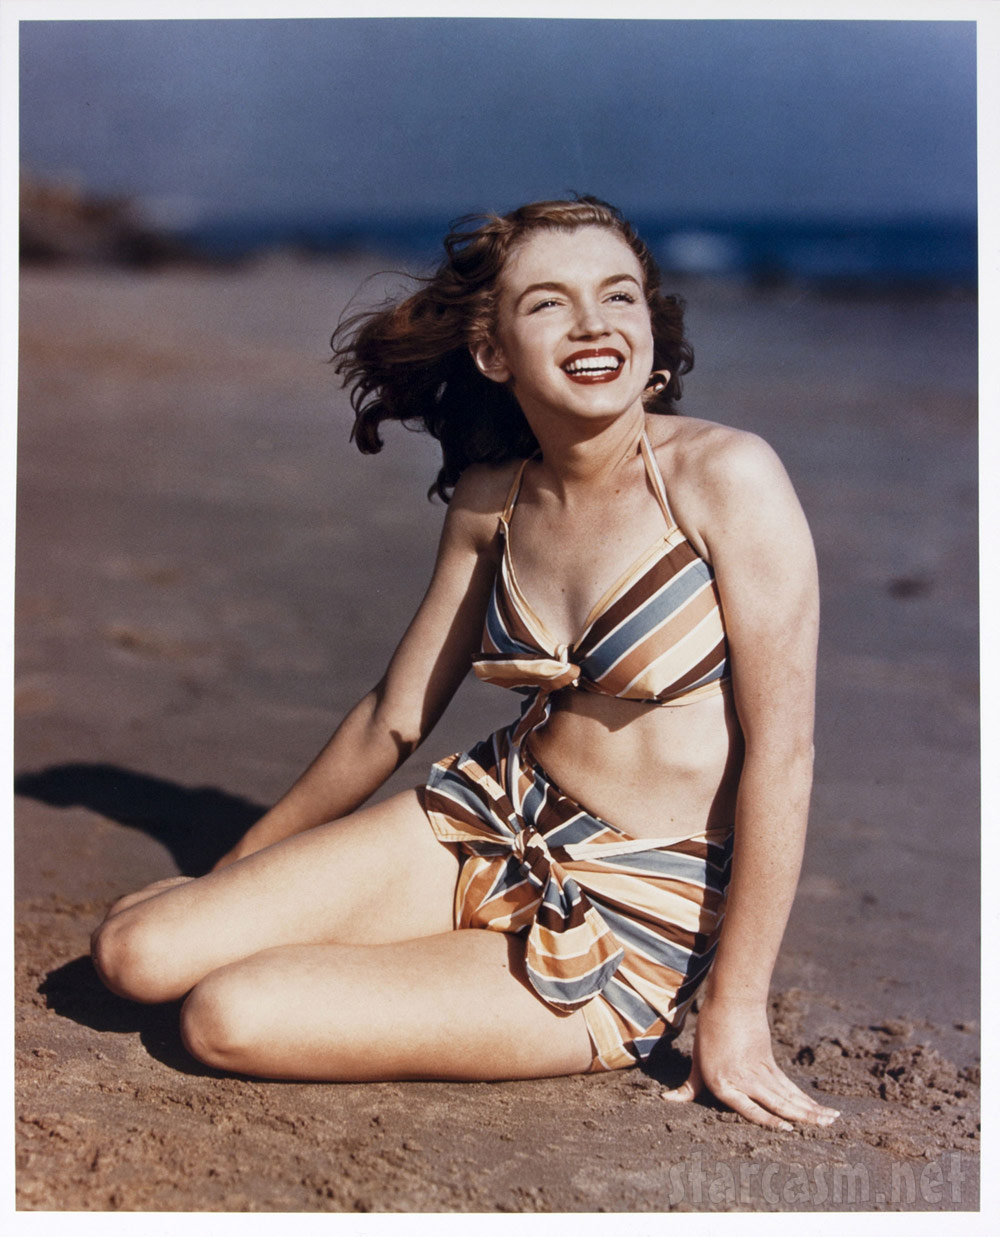 Norma Jeane Dougherty at age 19